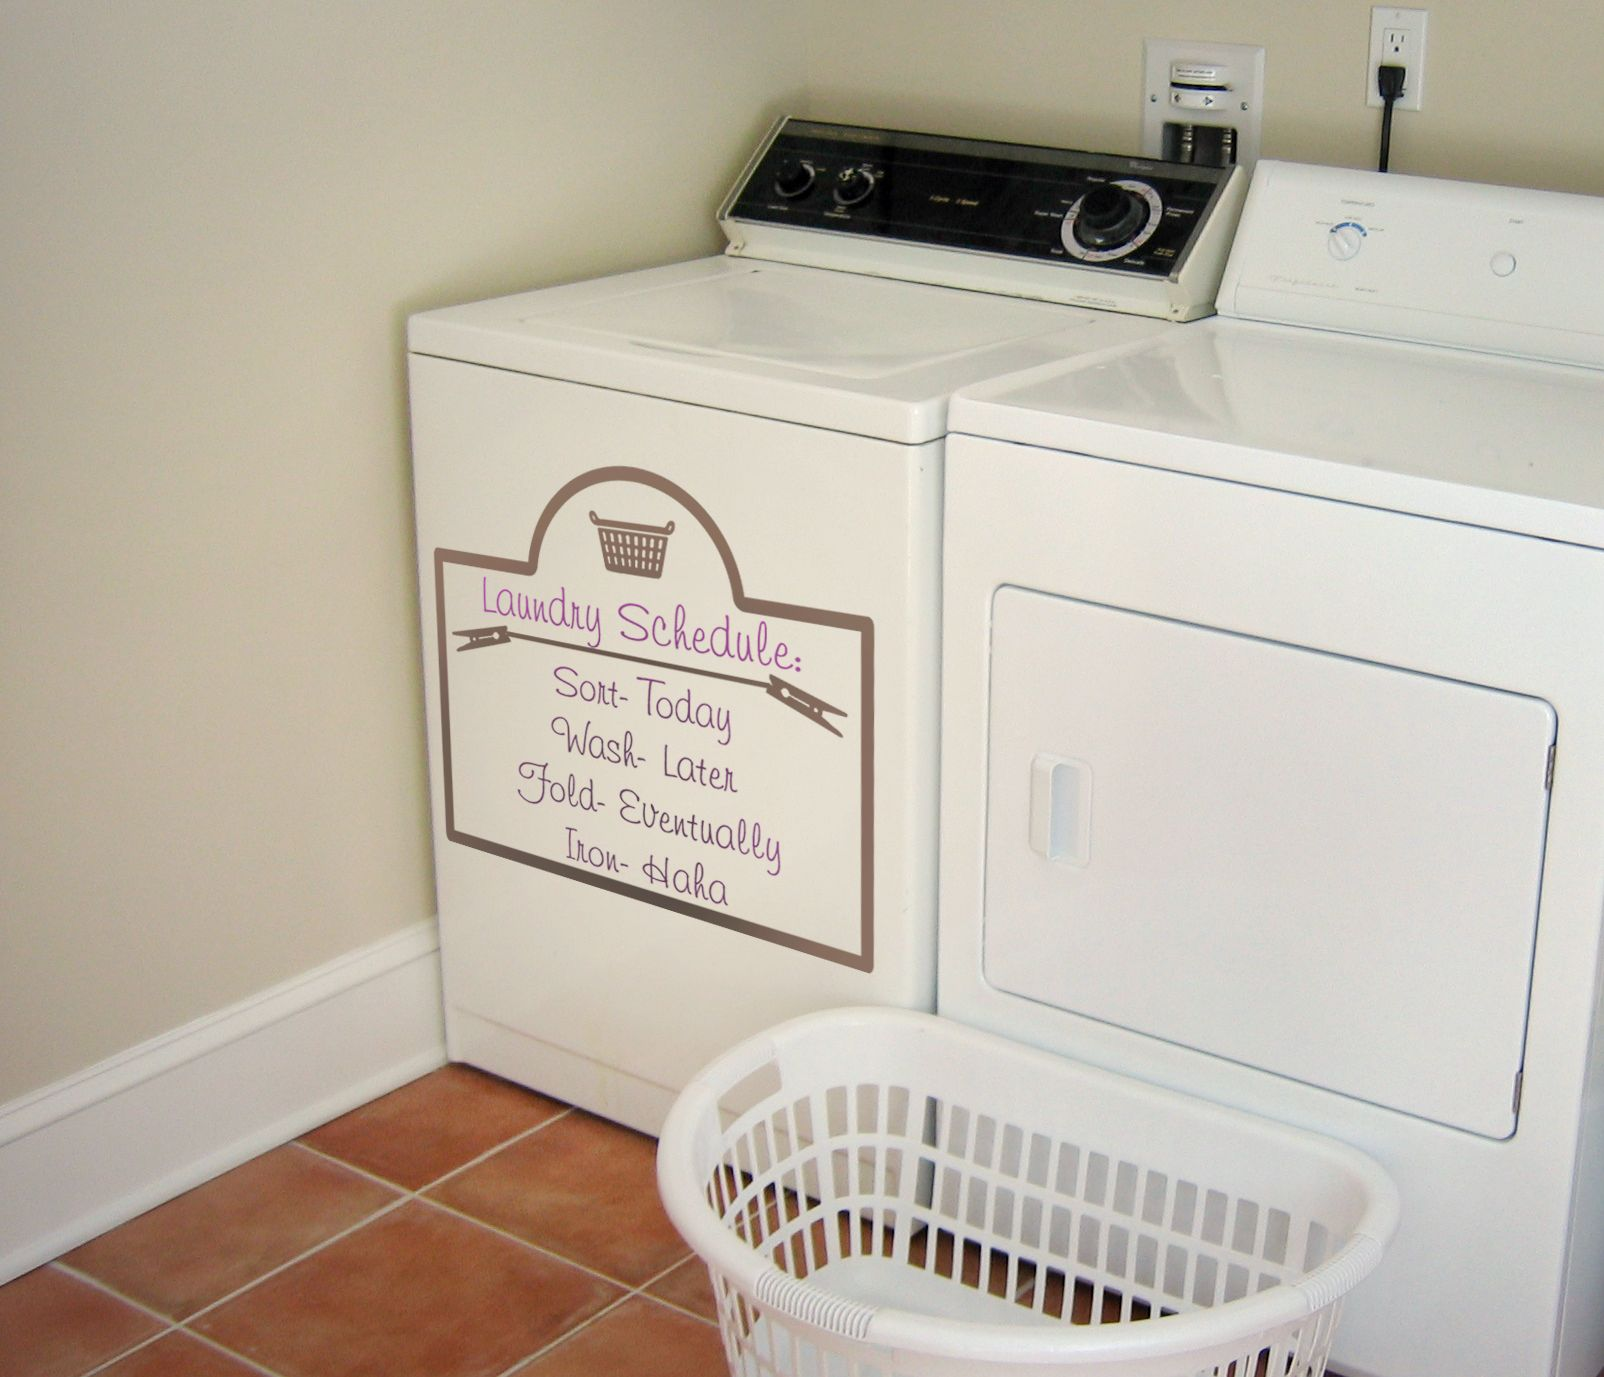 Laundry Schedule Wall Decal Laundry Schedule Laundry And Iron - How do i put on a wall decal